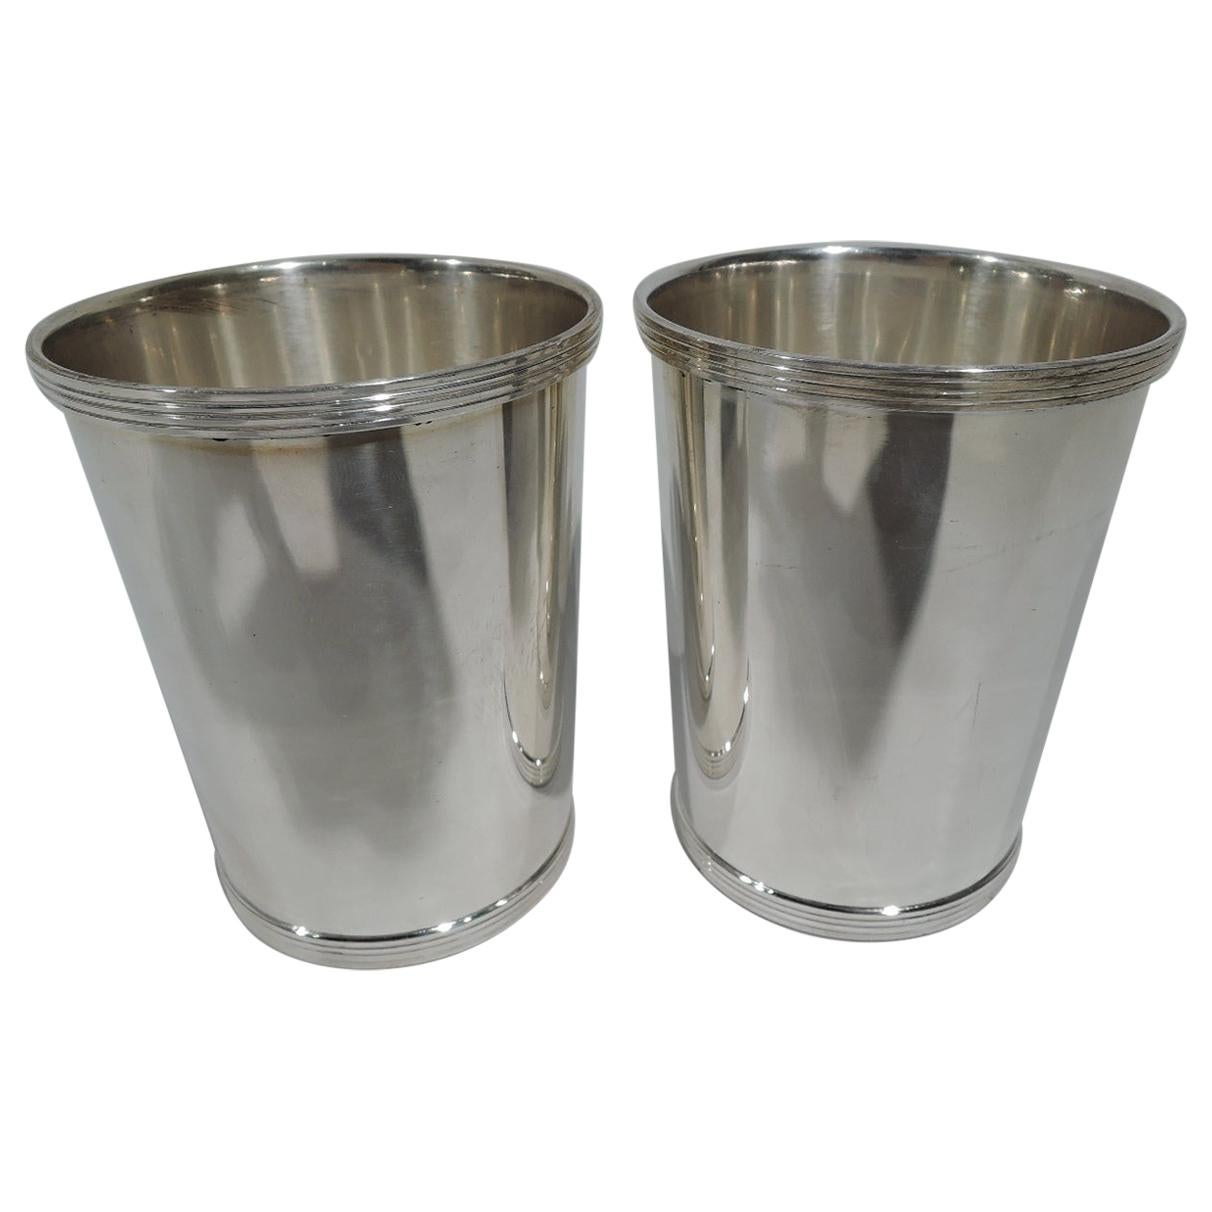 Pair of Traditional Sterling Silver Mint Julep Cups by Fisher